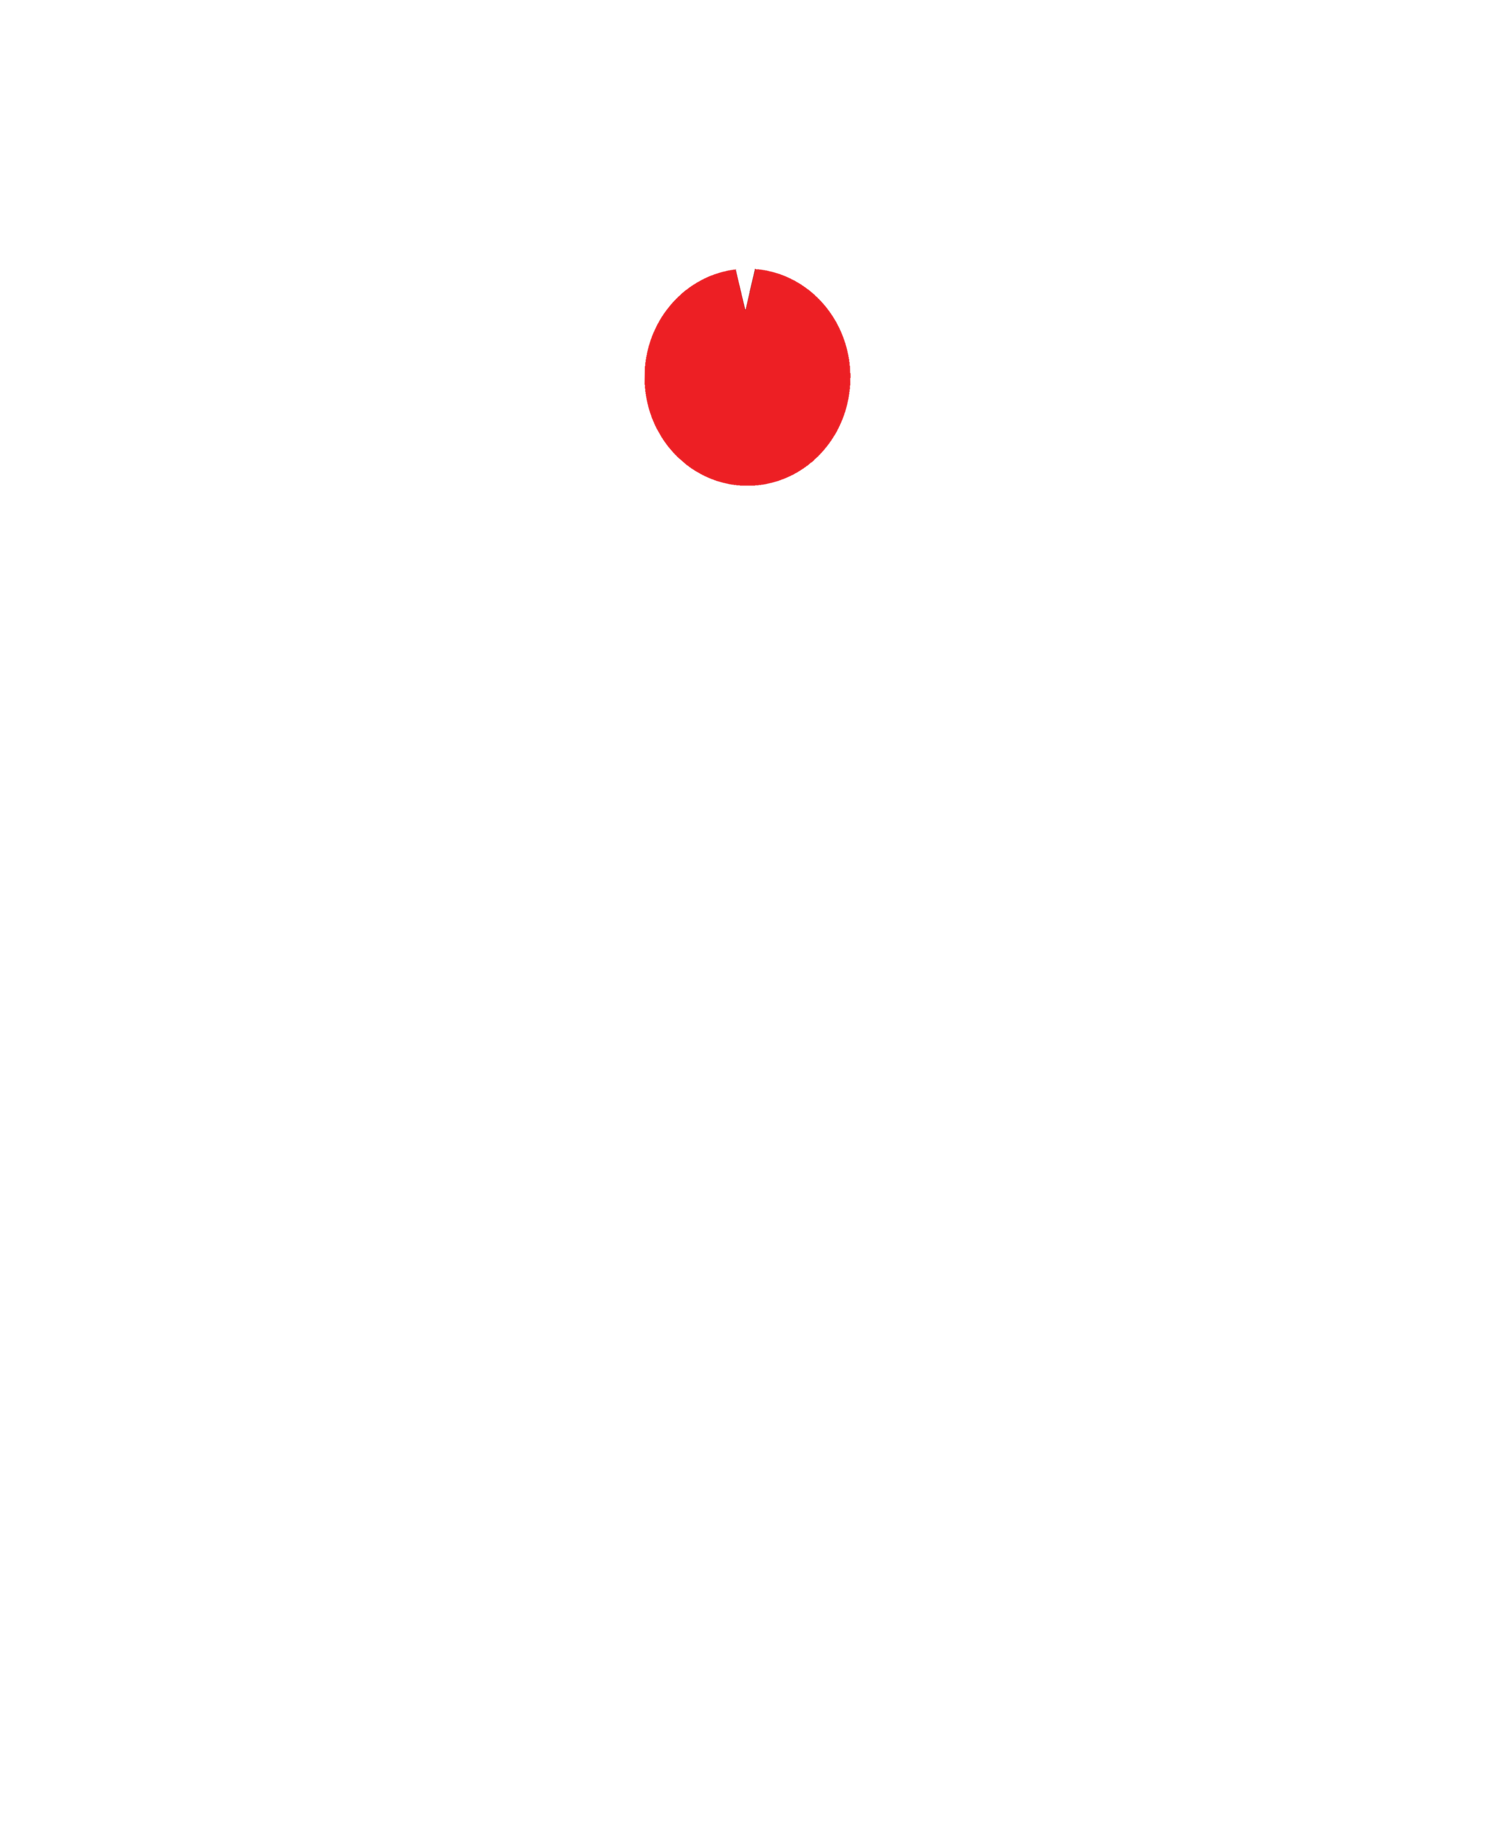 Armageddon Beachparty